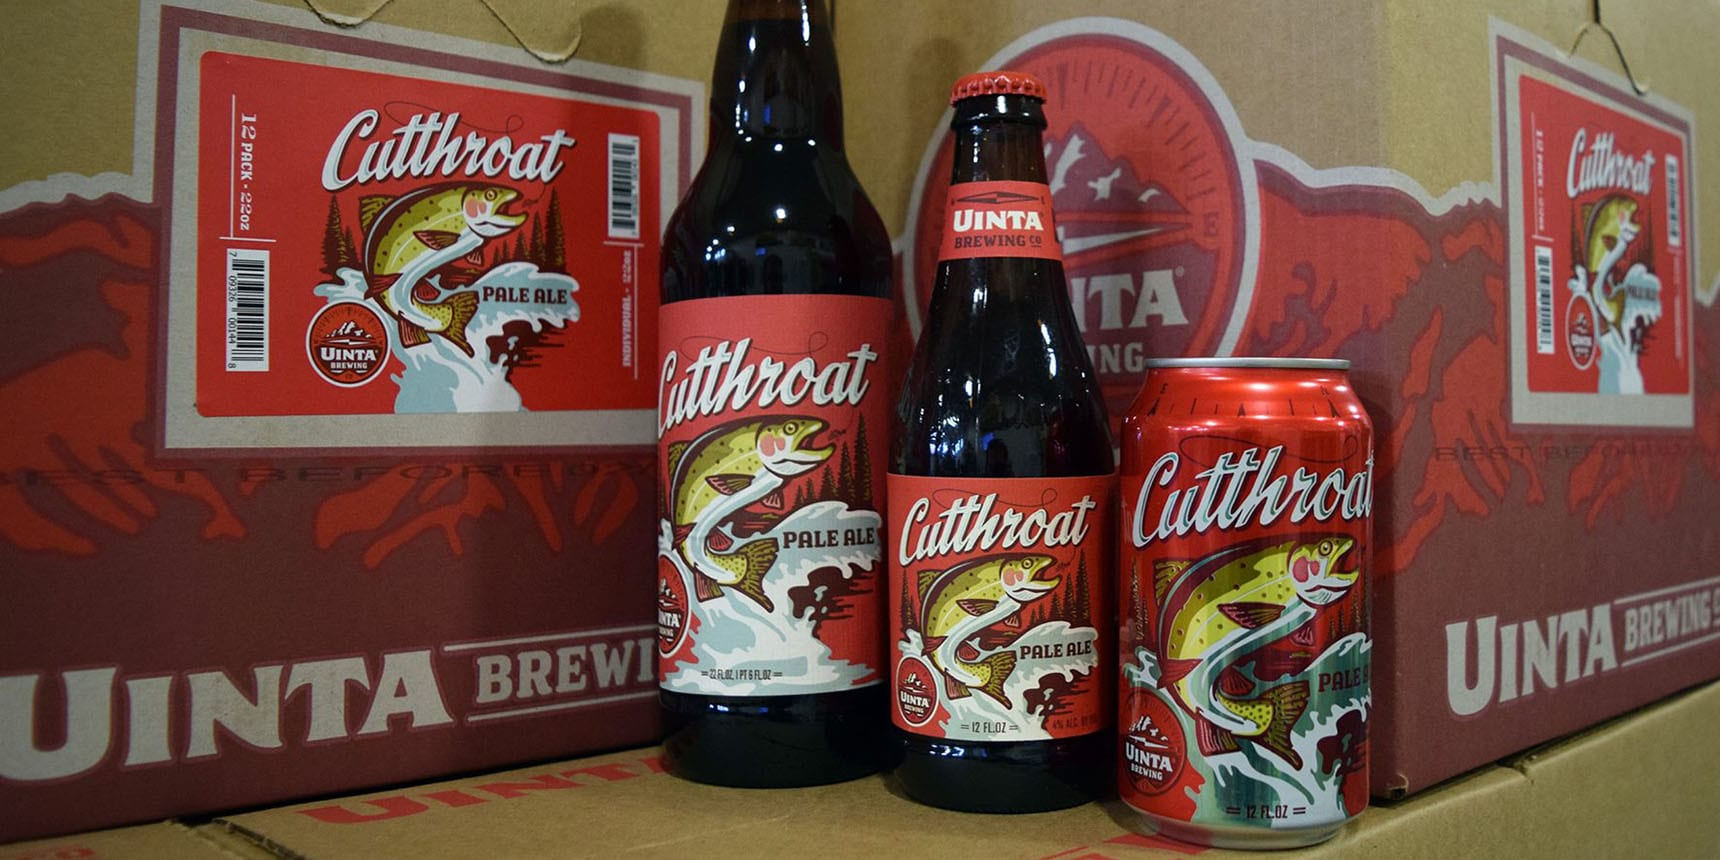 Uinta Brewing - Cutthroat Pale Ale